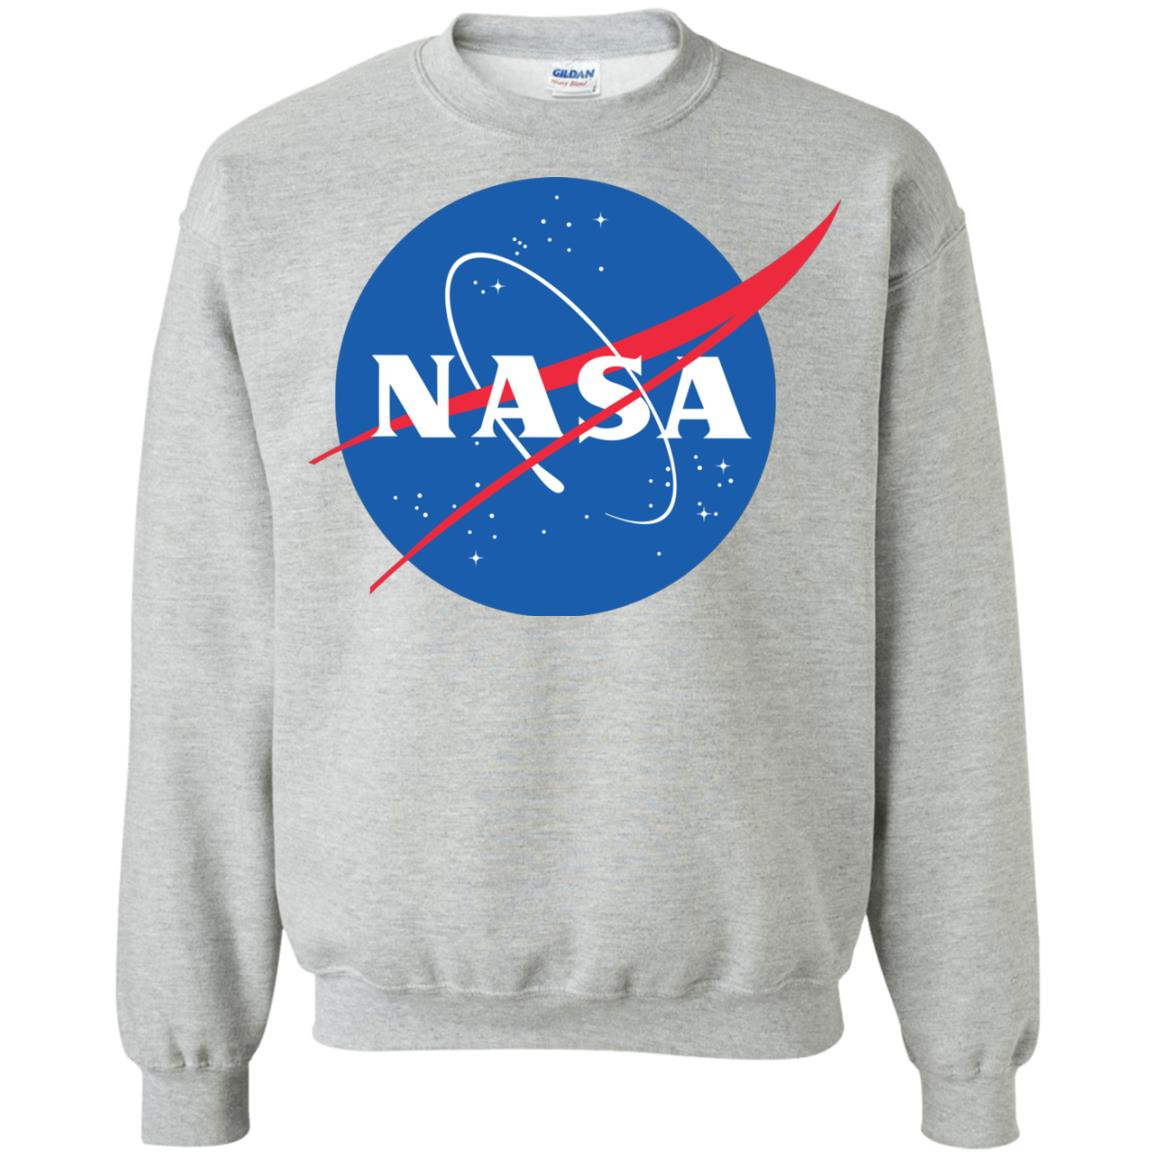 NASA Logo Sweater - Unisex Christmas Sweatshirt